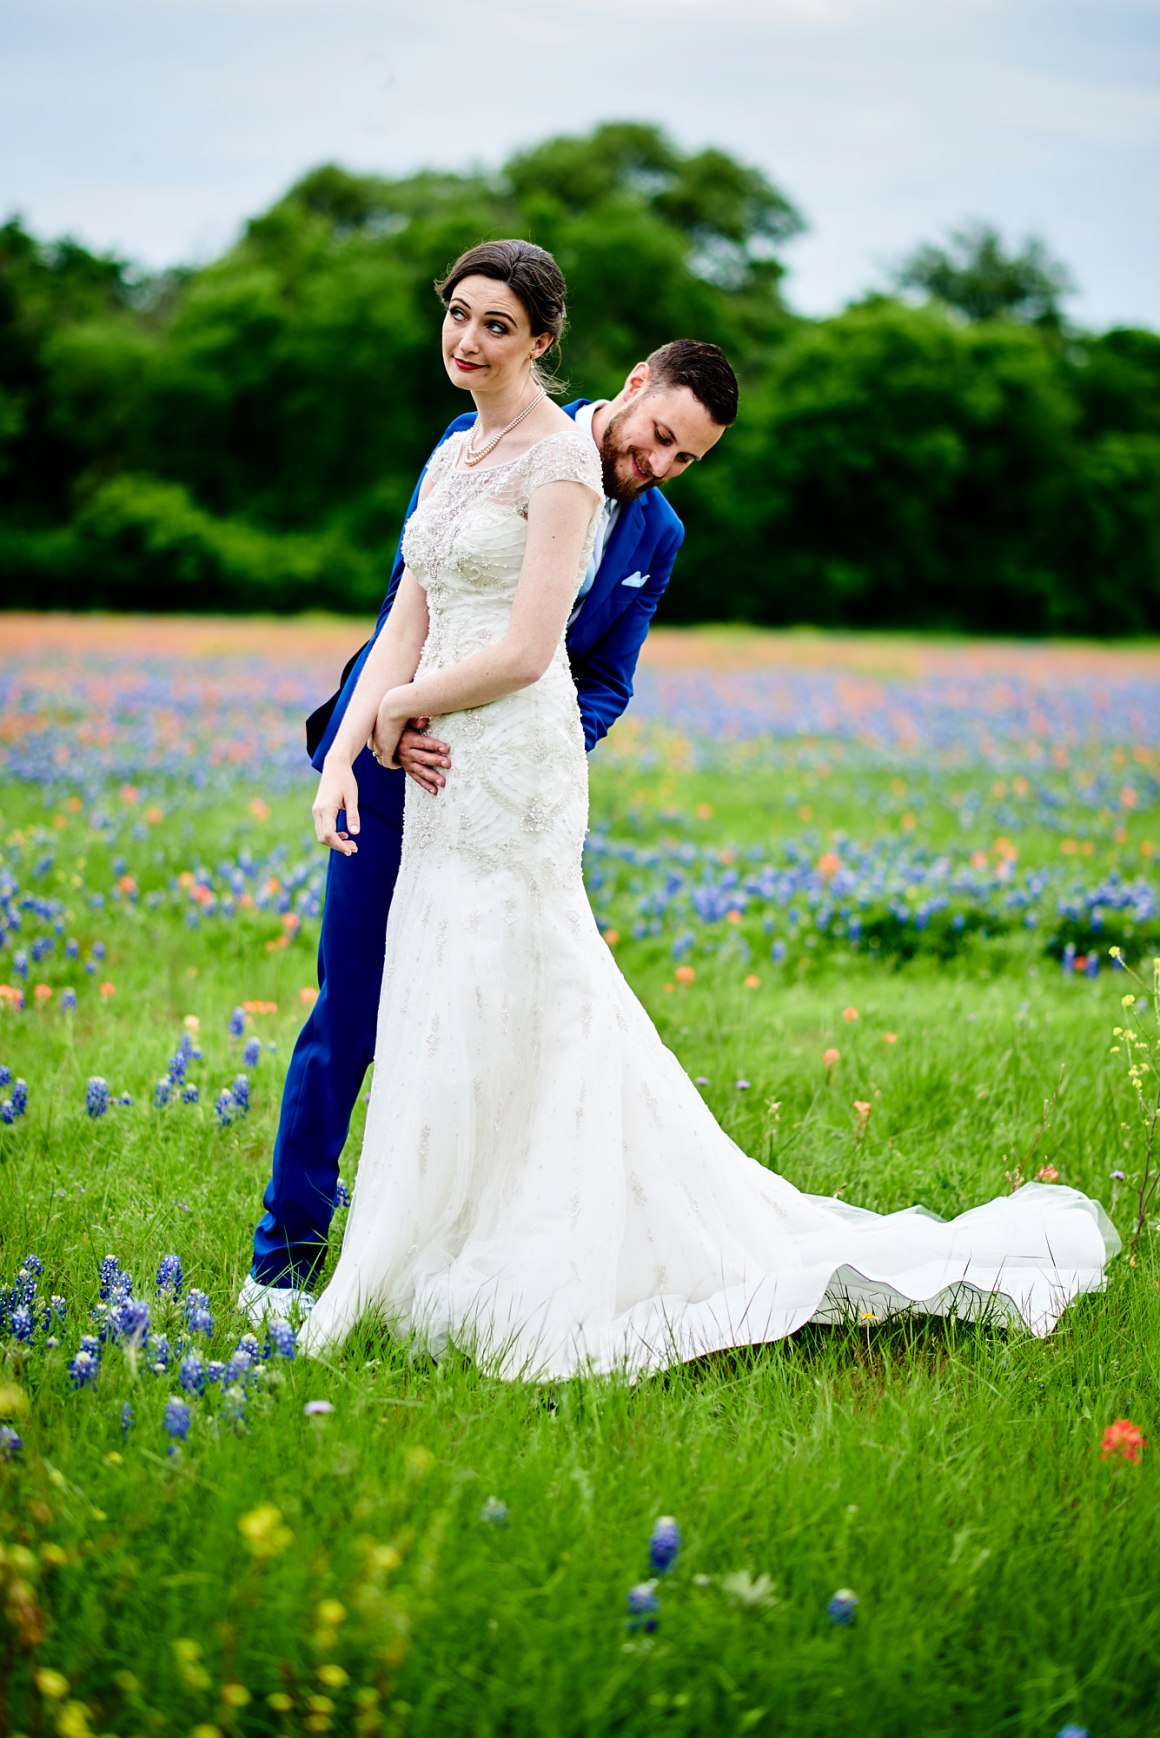 Bluebonnet First Look - Waco DIY Wedding - Temple Camp Wedding - Hallie and Jonathan - Green Family Camp - Bluebonnet Wedding